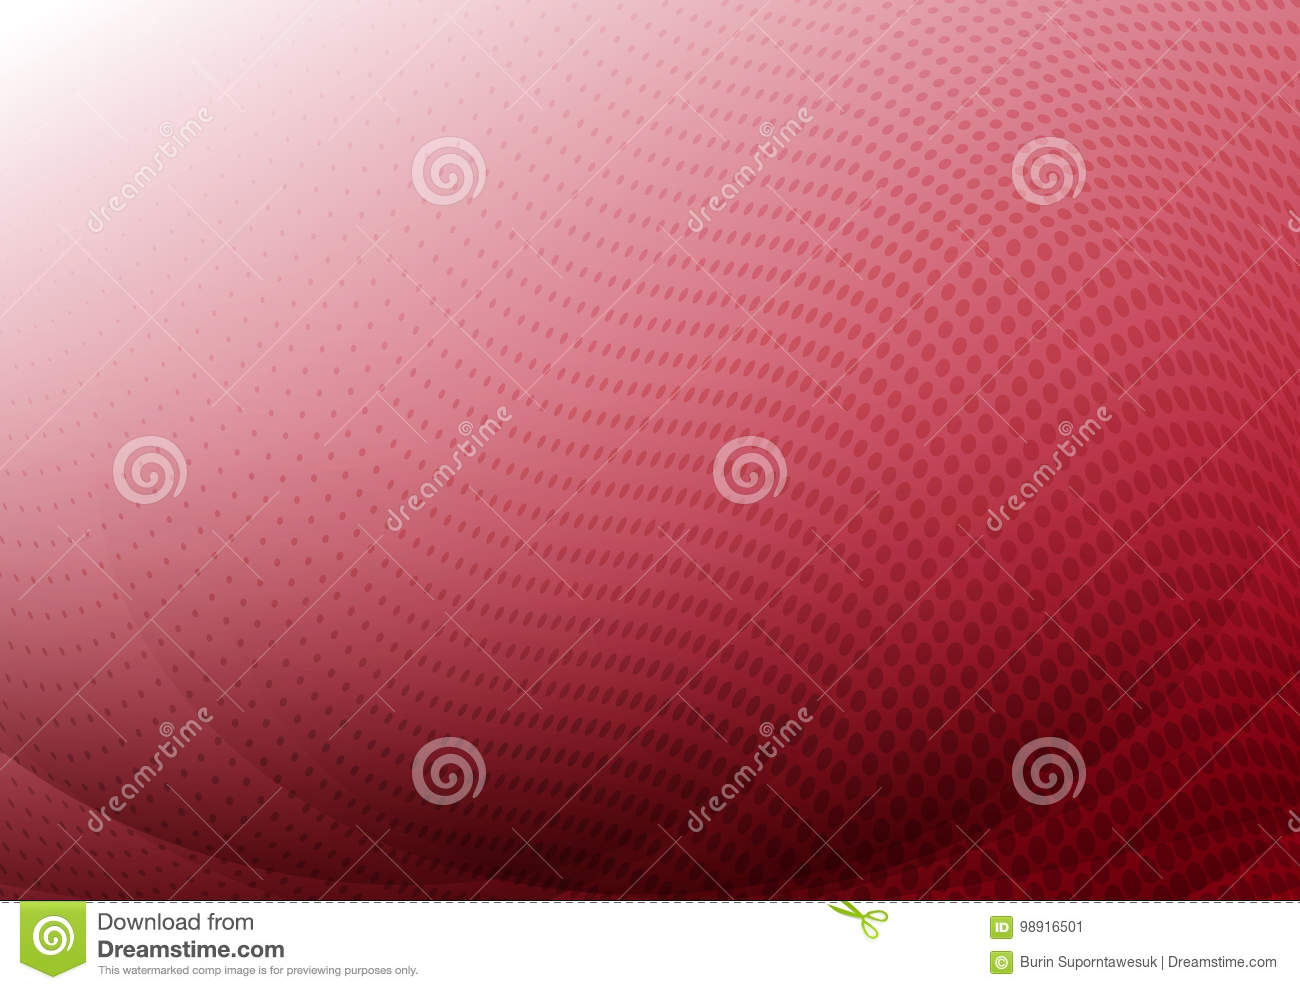 Red curve abstract background with wave halftone copy space. Vector